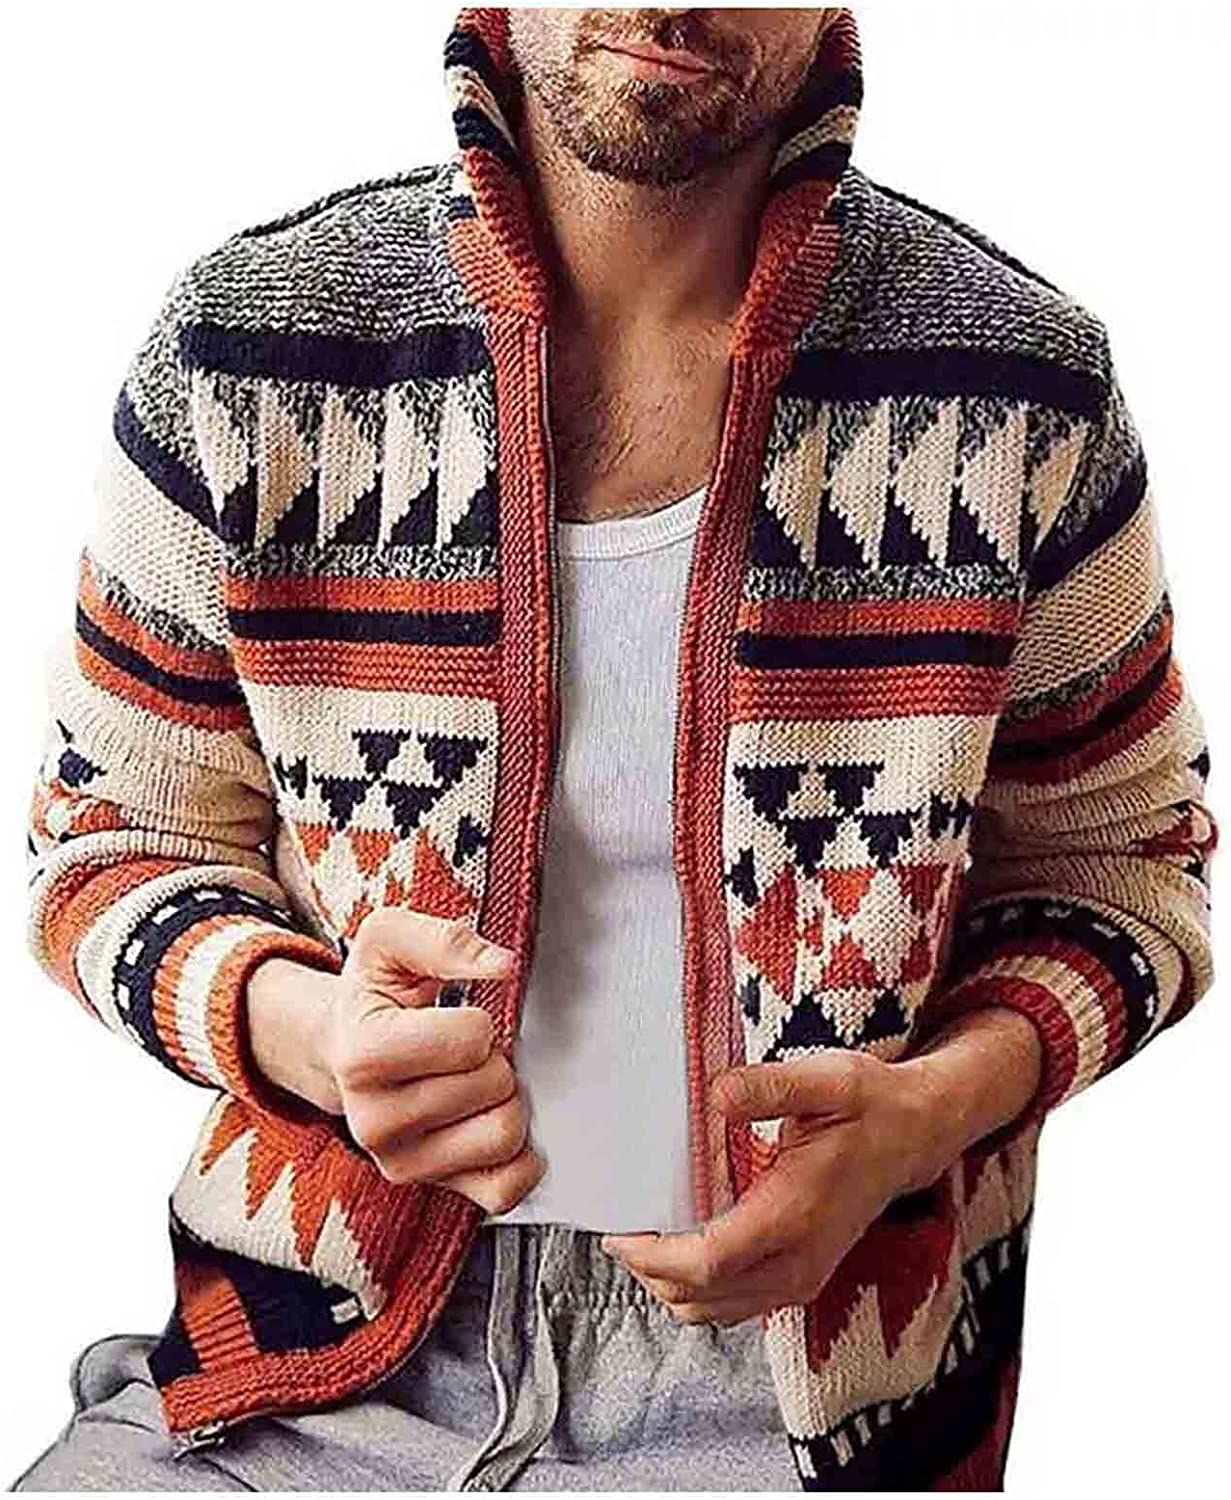 Huangse Men's Vintage Full Zip Cardigan Sweater Slim Fit Open Front Cable Knitted Jacket Turn Down Collar Sweater Jacket